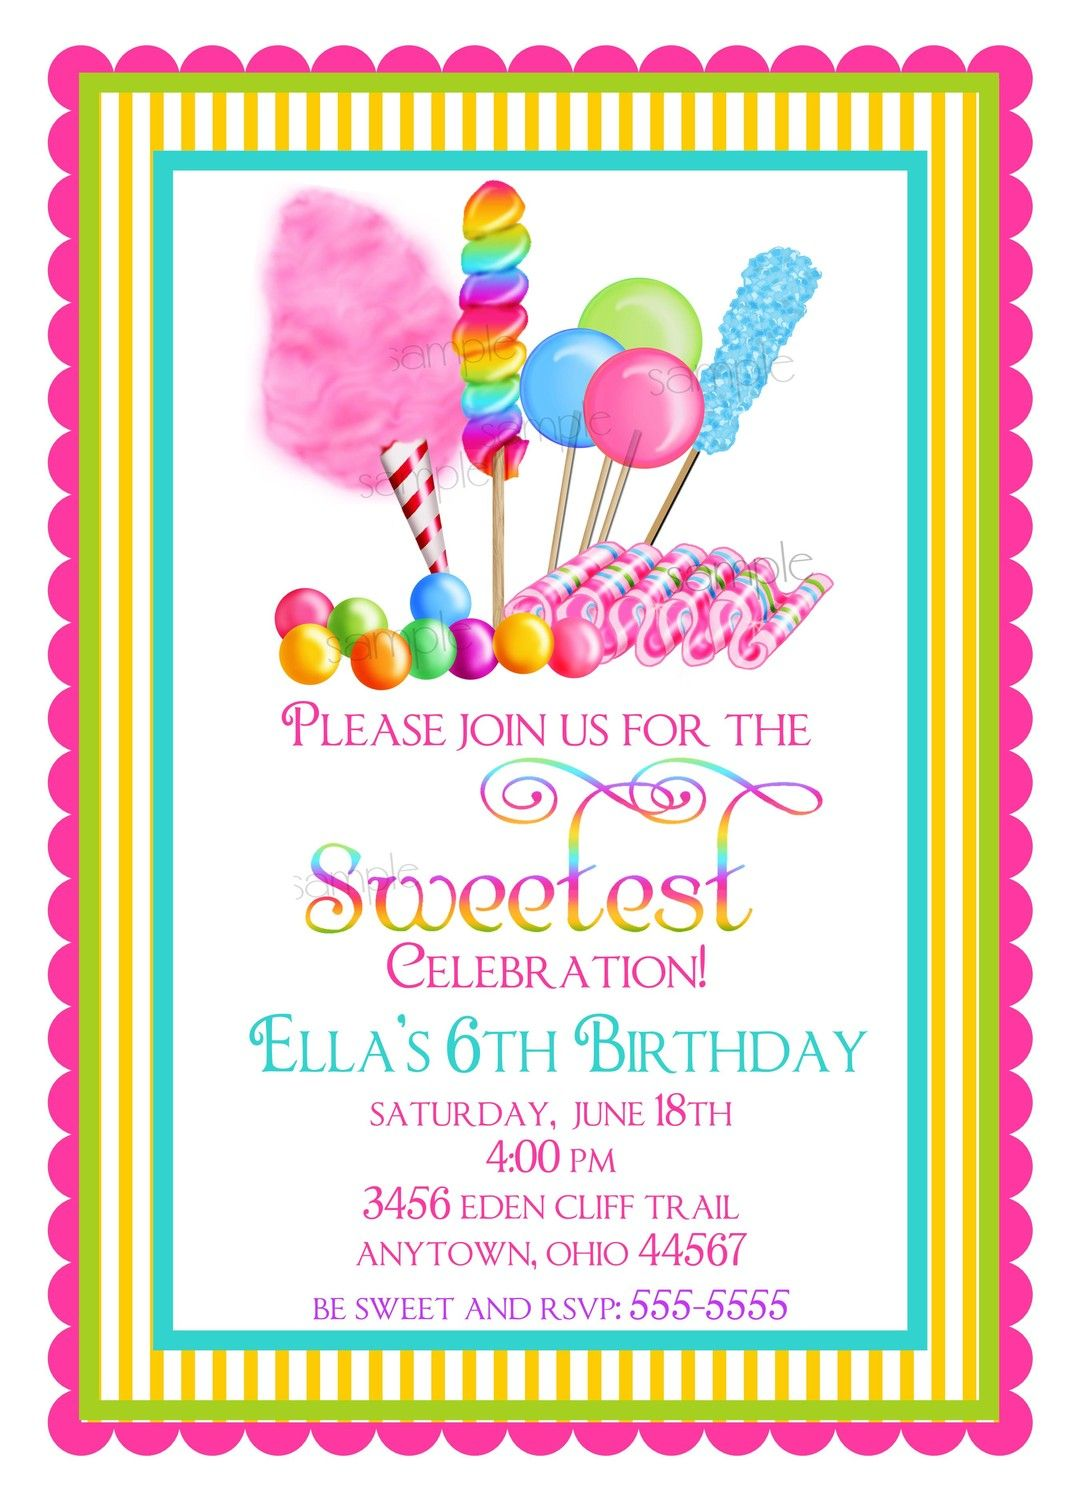 Candy Circus Invitations Sweet Birthday Party